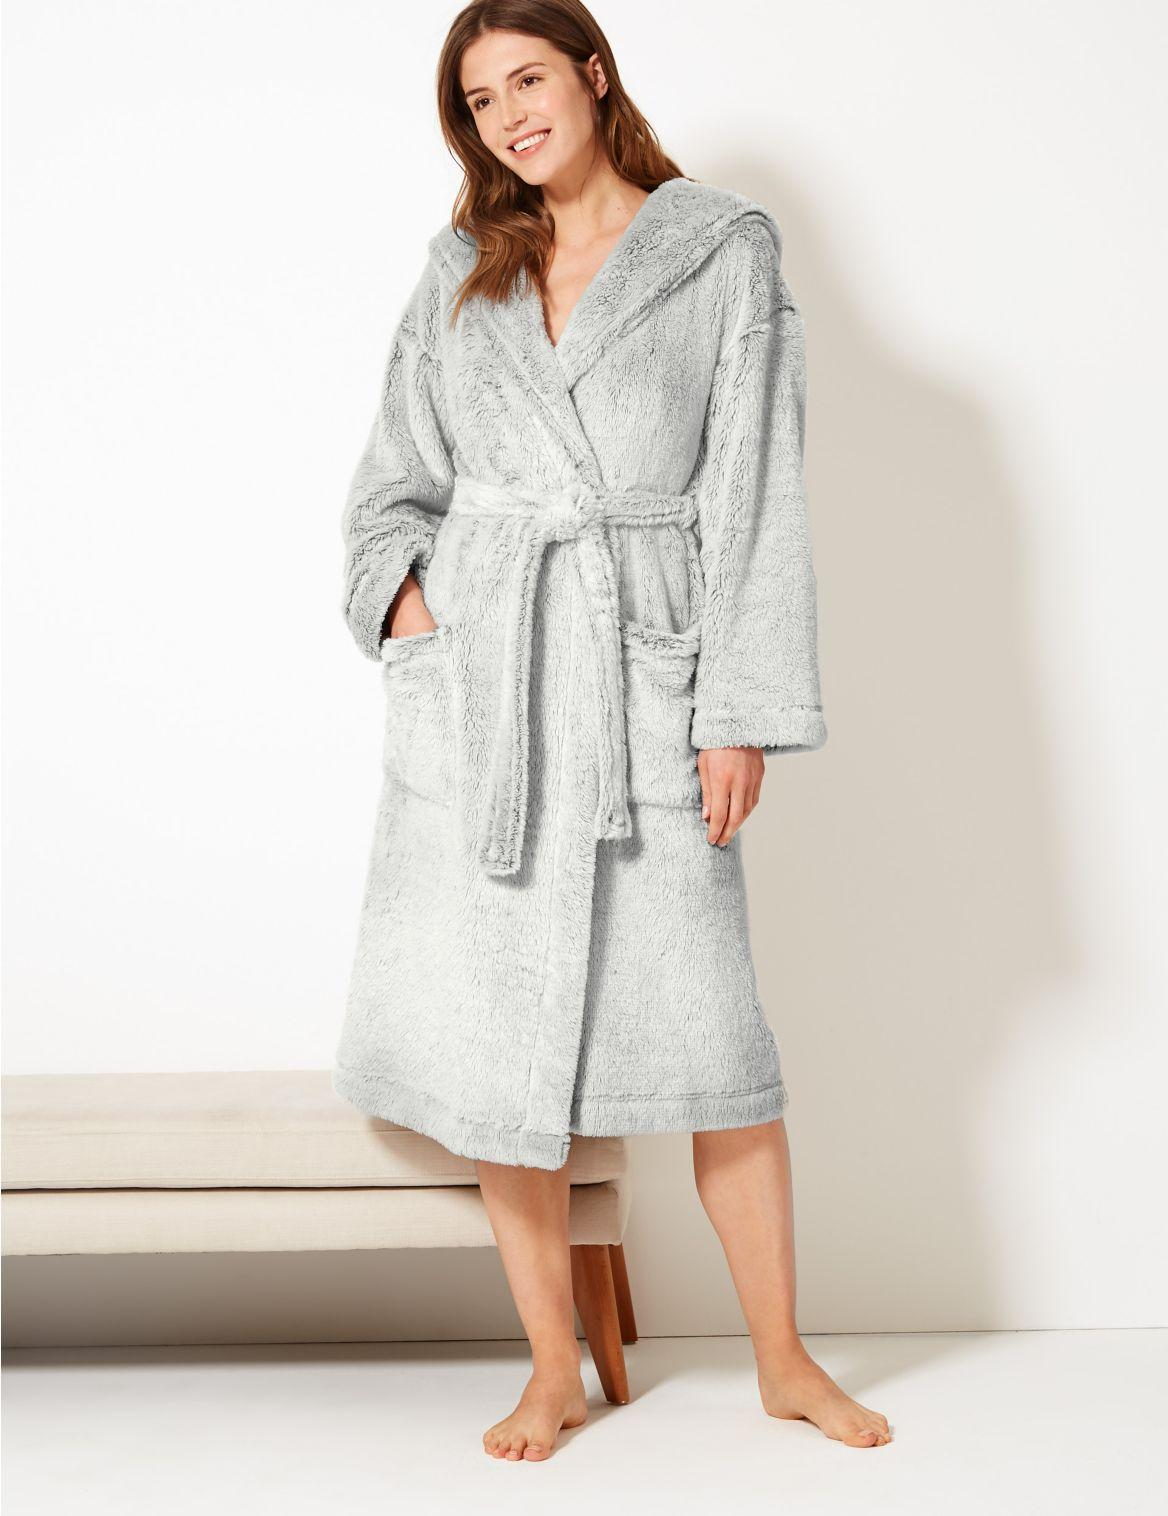 Ex M/&S Mens Hooded Dressing Gown Navy Grey Sizes 2-2XL NSP £29.95